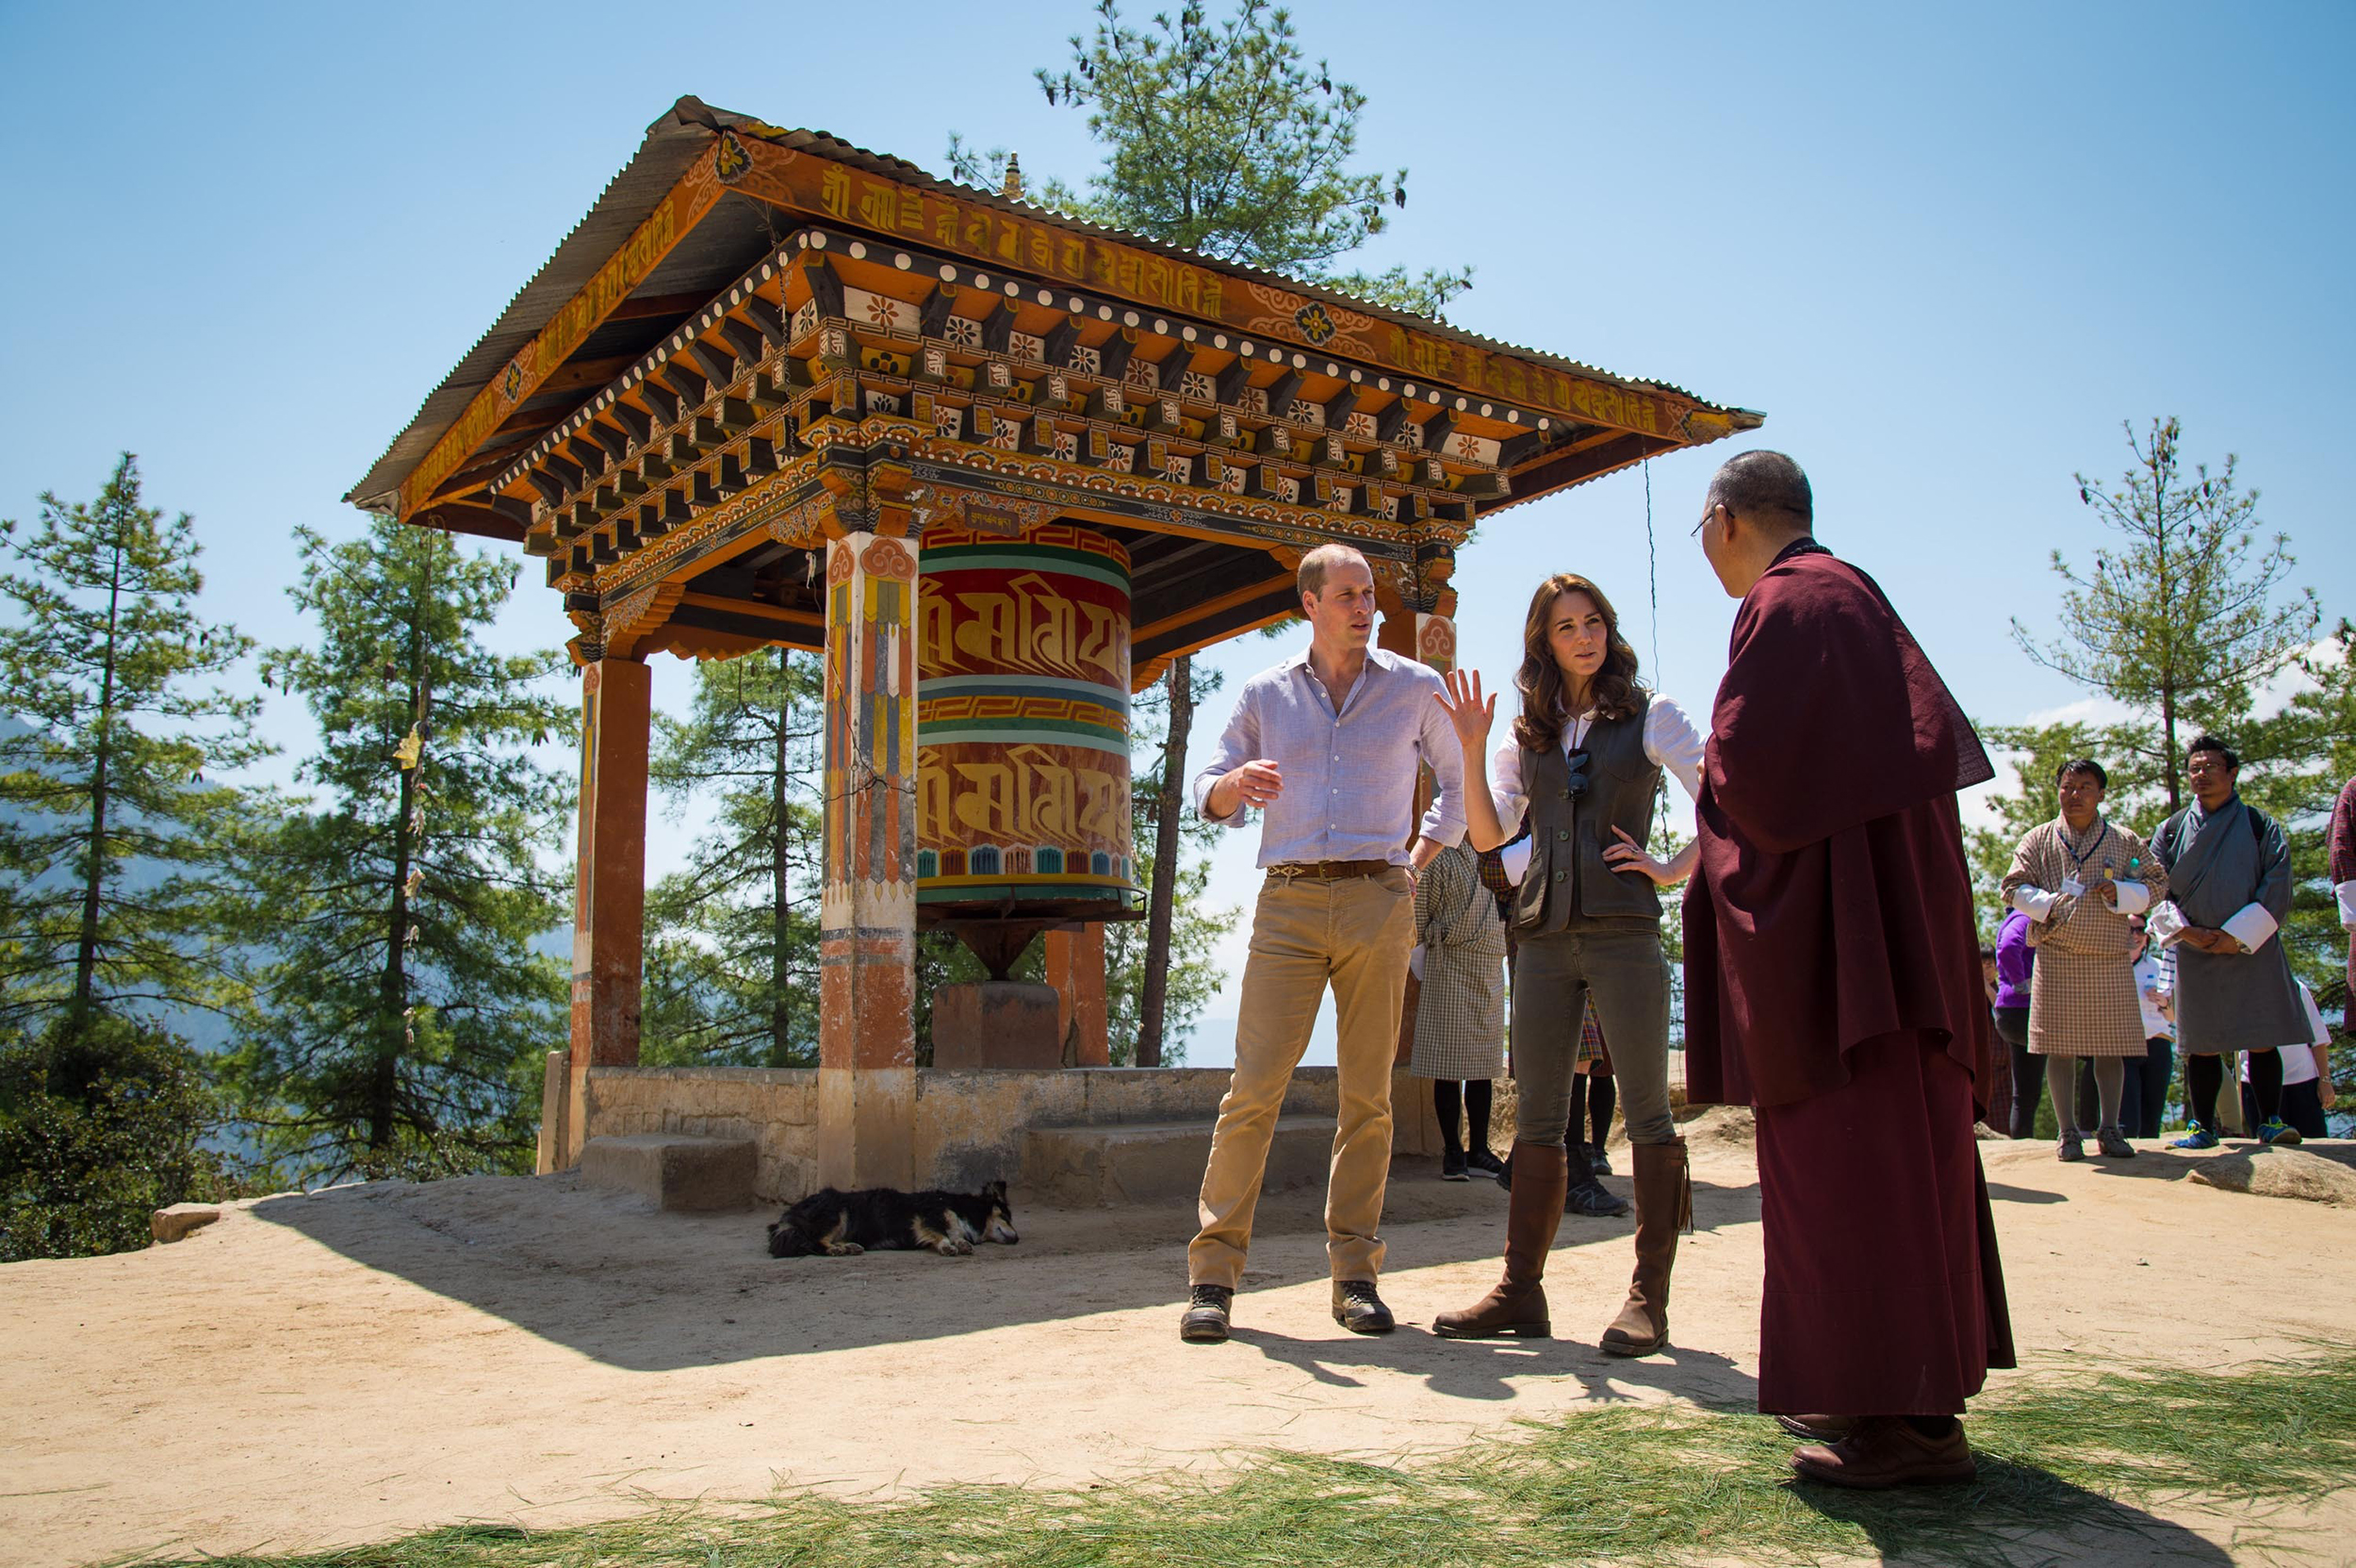 Prince William, Duke of Cambridge and Catherine, Duchess of Cambridge chat with a monk on the trek up to Tiger's Nest during a visit to Thimphu, Bhutan on April 15, 2016.